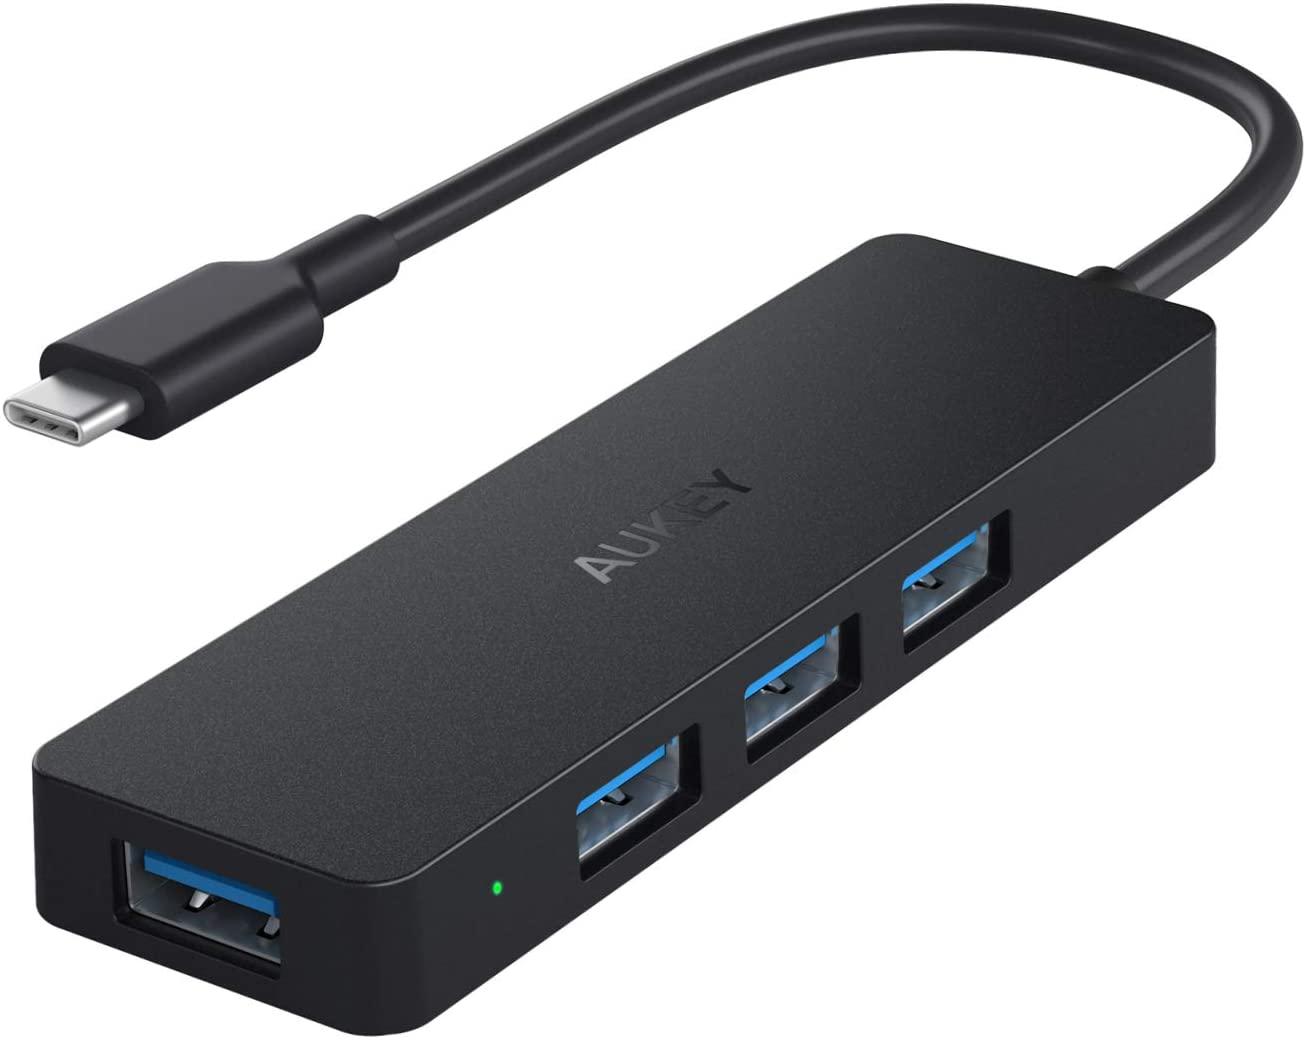 AUKEY USB C Hub Ultra Slim USB C Adapter with 4 USB 3.0 Ports USB Type C Hub for MacBook Pro 2019/2018/2017, Google Chromebook Pixelbook, XPS, Samsung S9/S8 and More USB Type C Devices (Black)